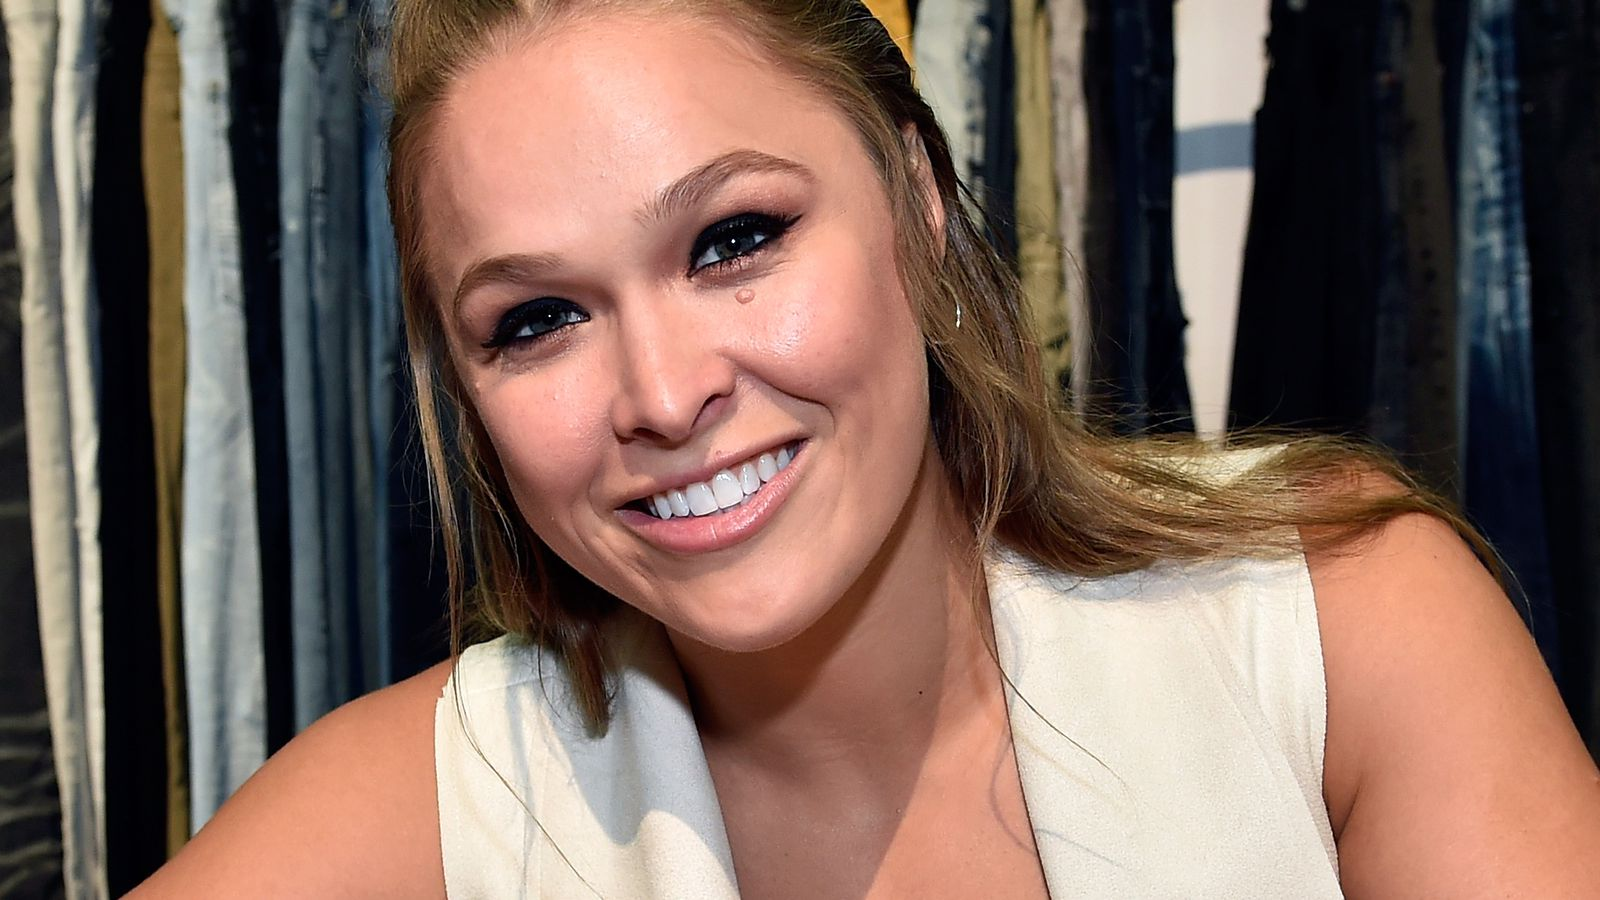 Your stupid questions about UFC return of Ronda Rousey will not be answered